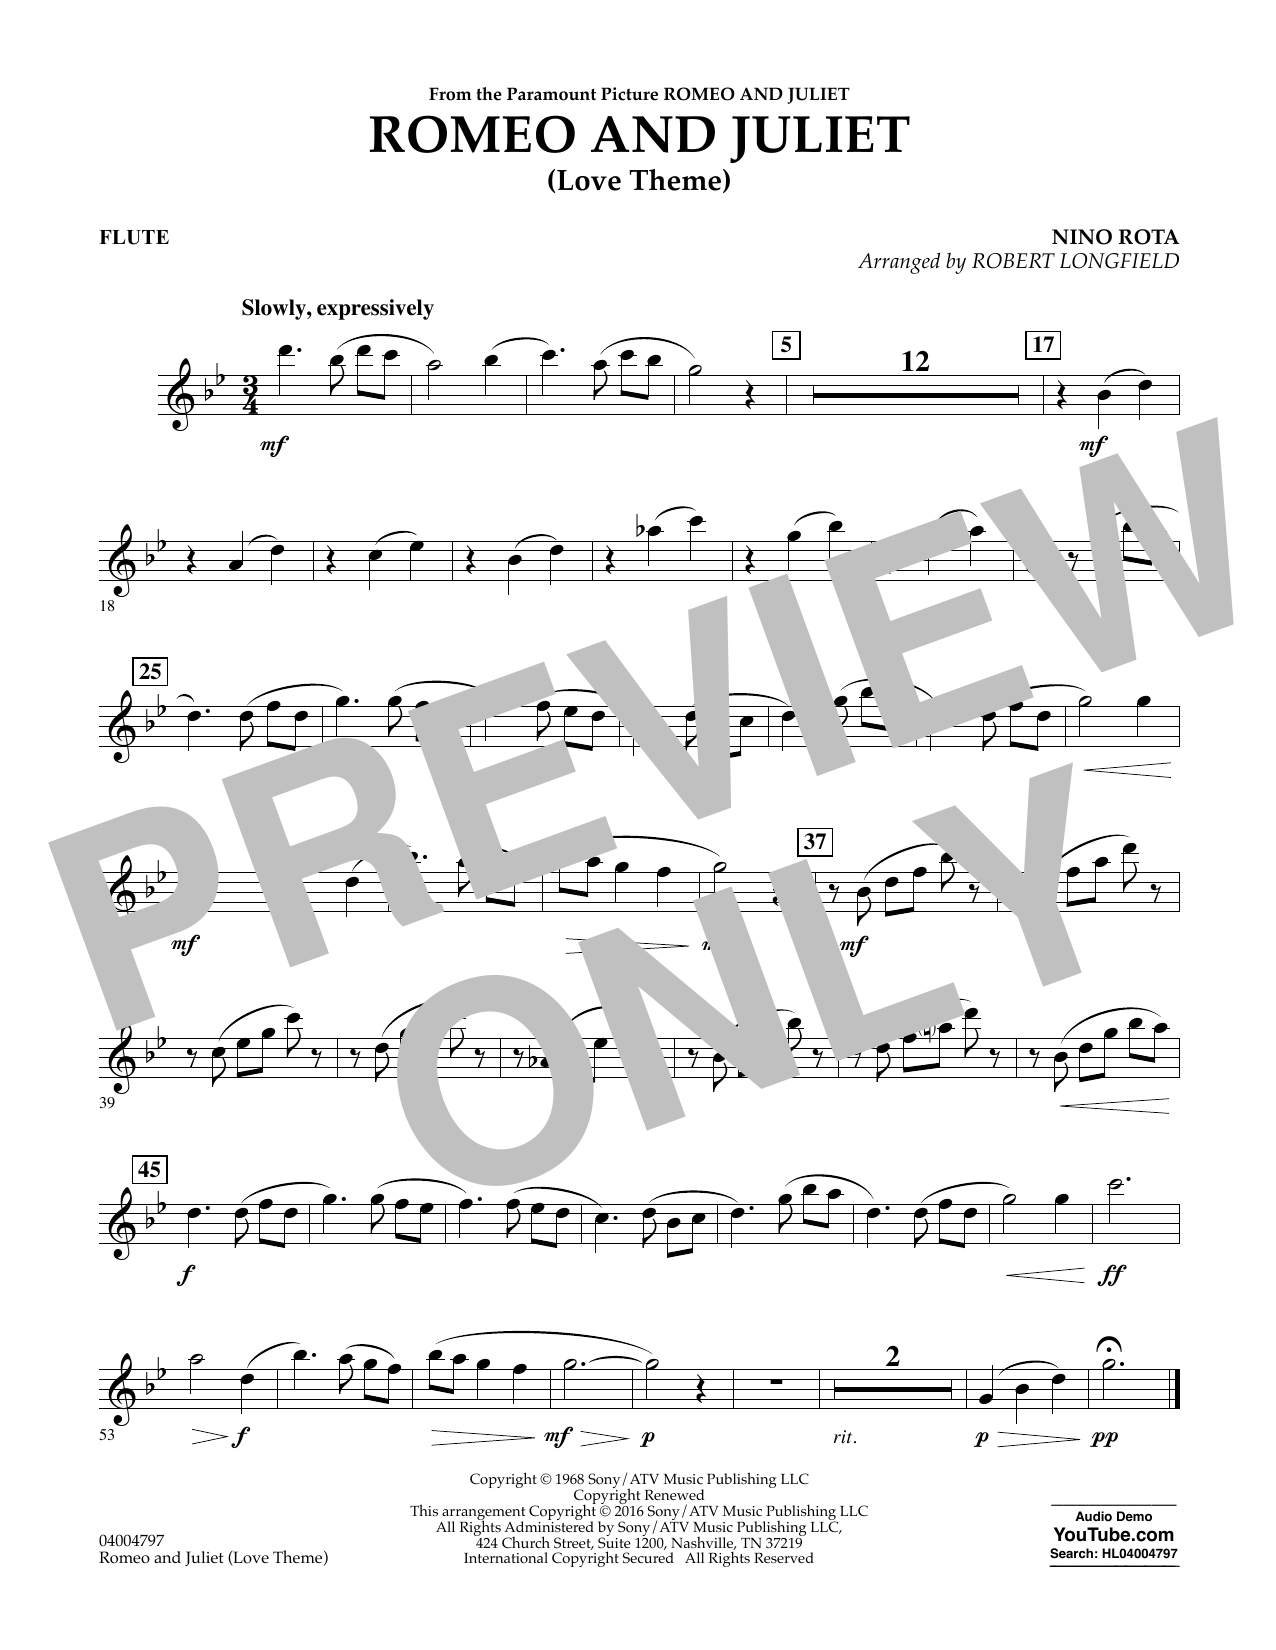 Romeo and Juliet (Love Theme) - Flute (Concert Band)